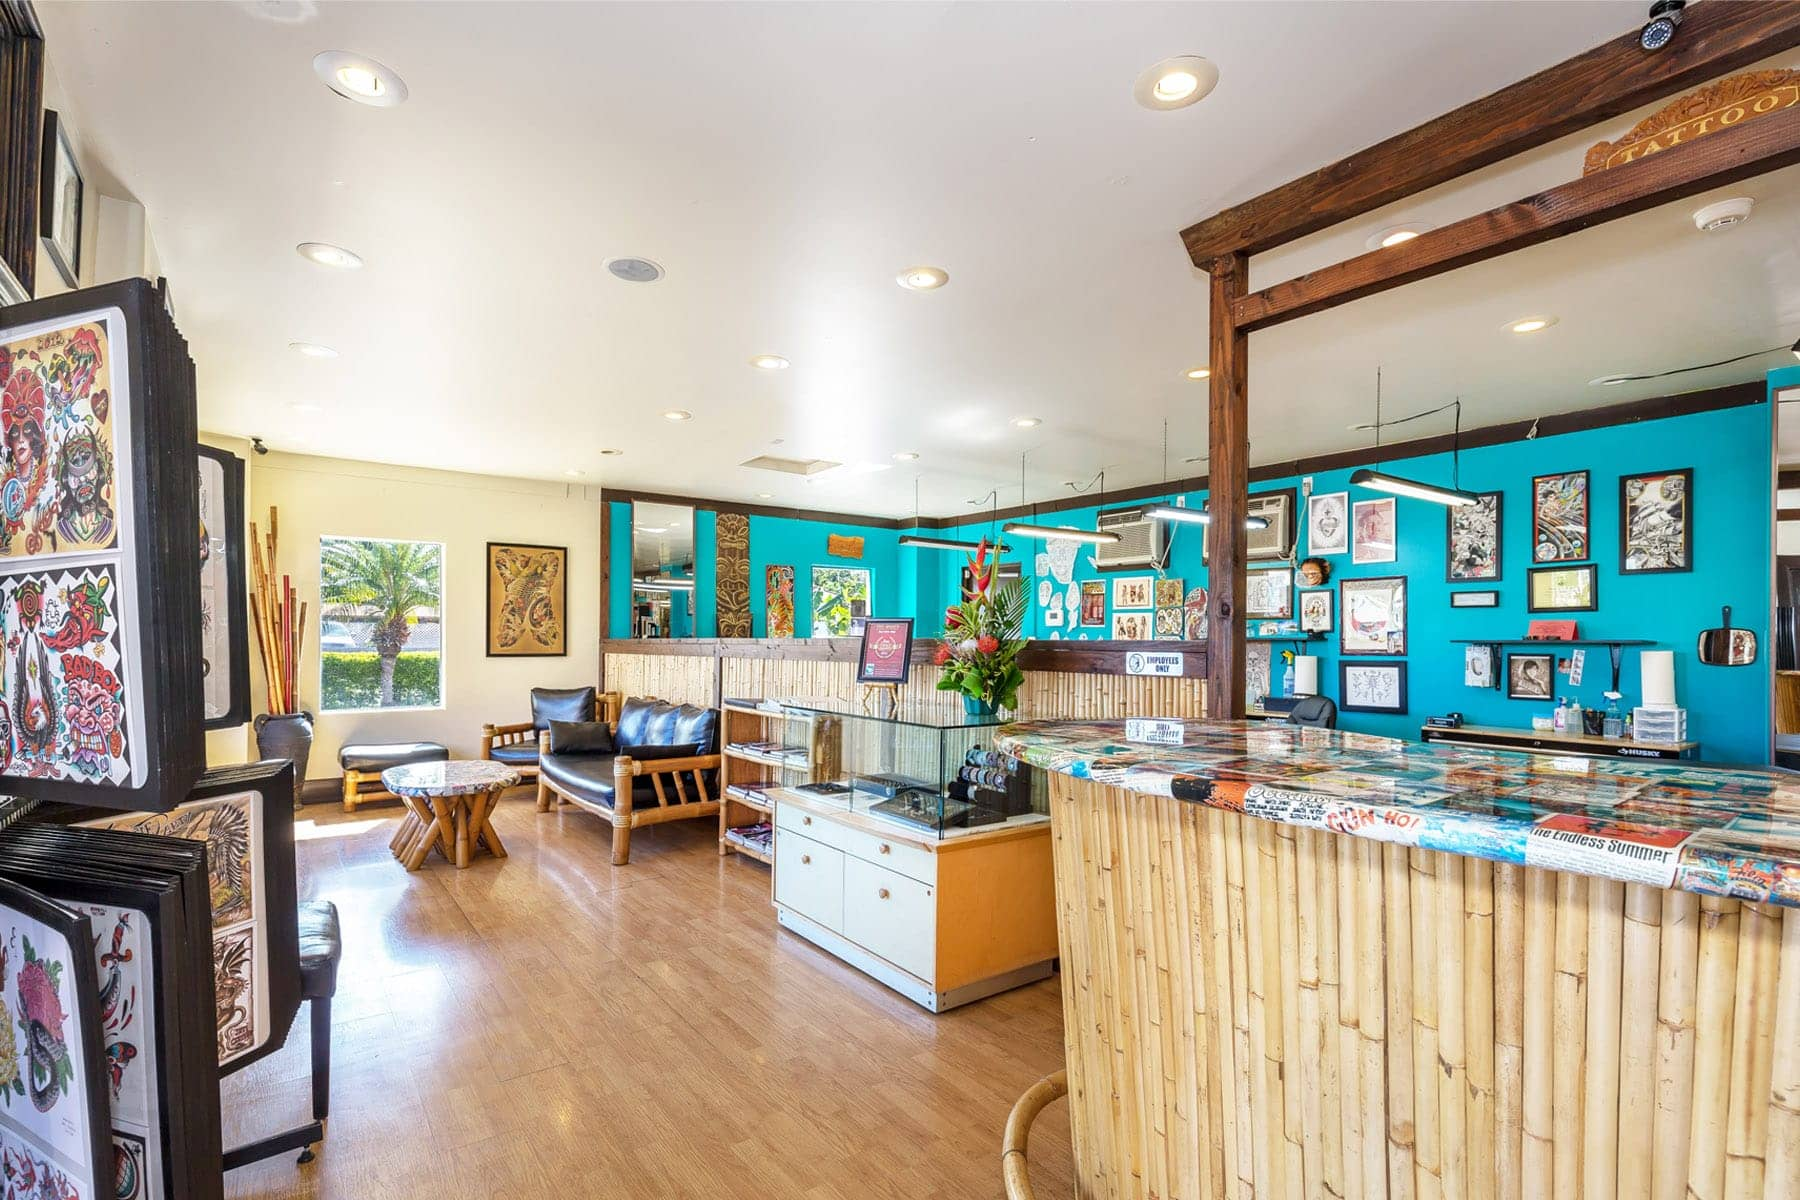 Mid-Pacific Tattoo Lahainaluna Road location in Lahaina Maui, inside the shop